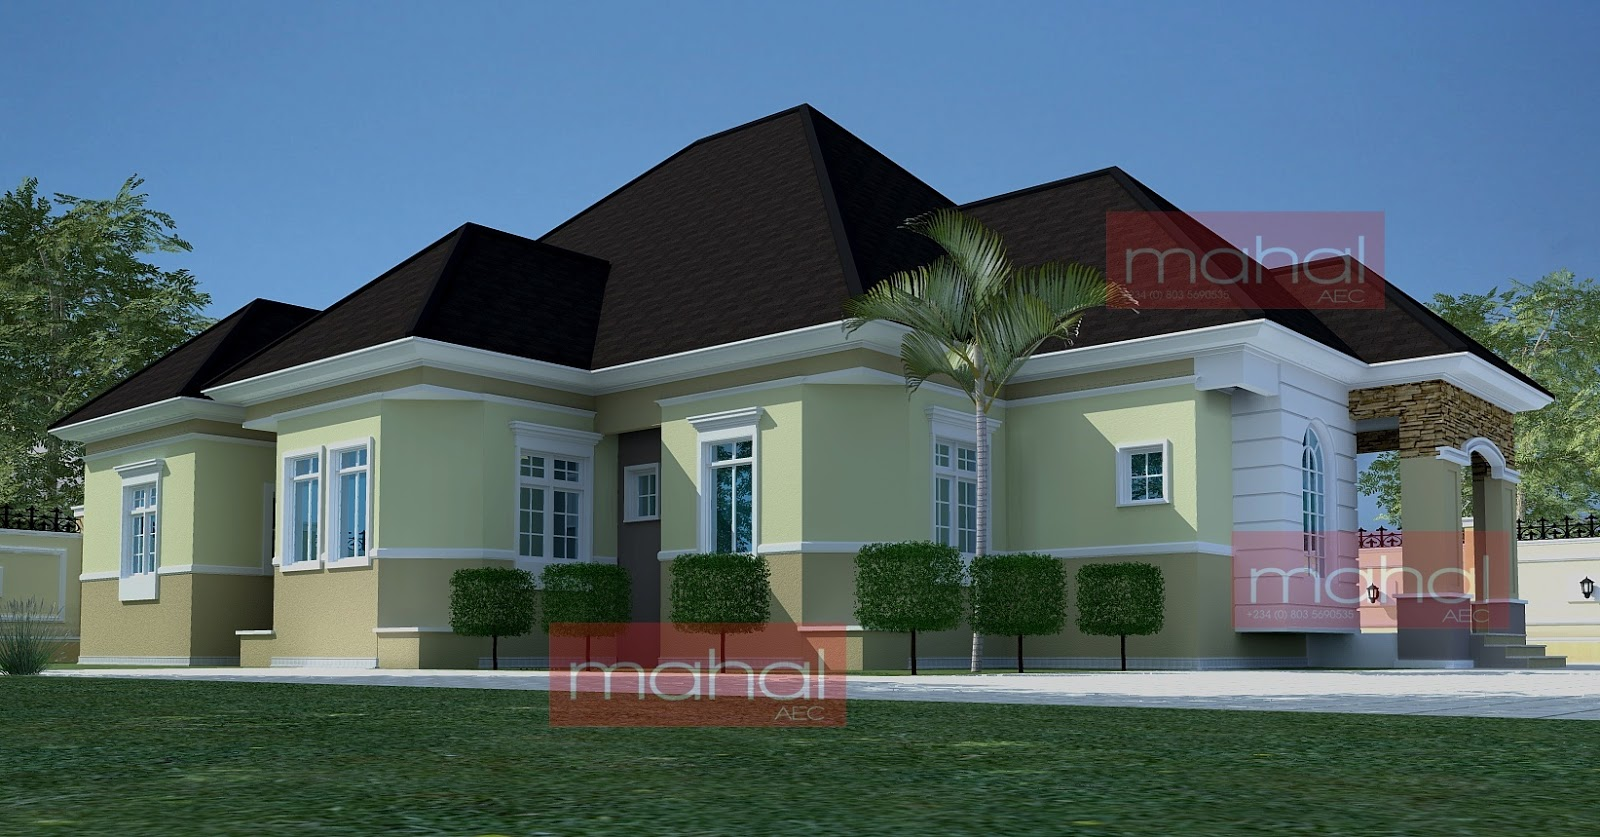 Duplex design and bungalows in nigeria joy studio design for Nigeria house plans